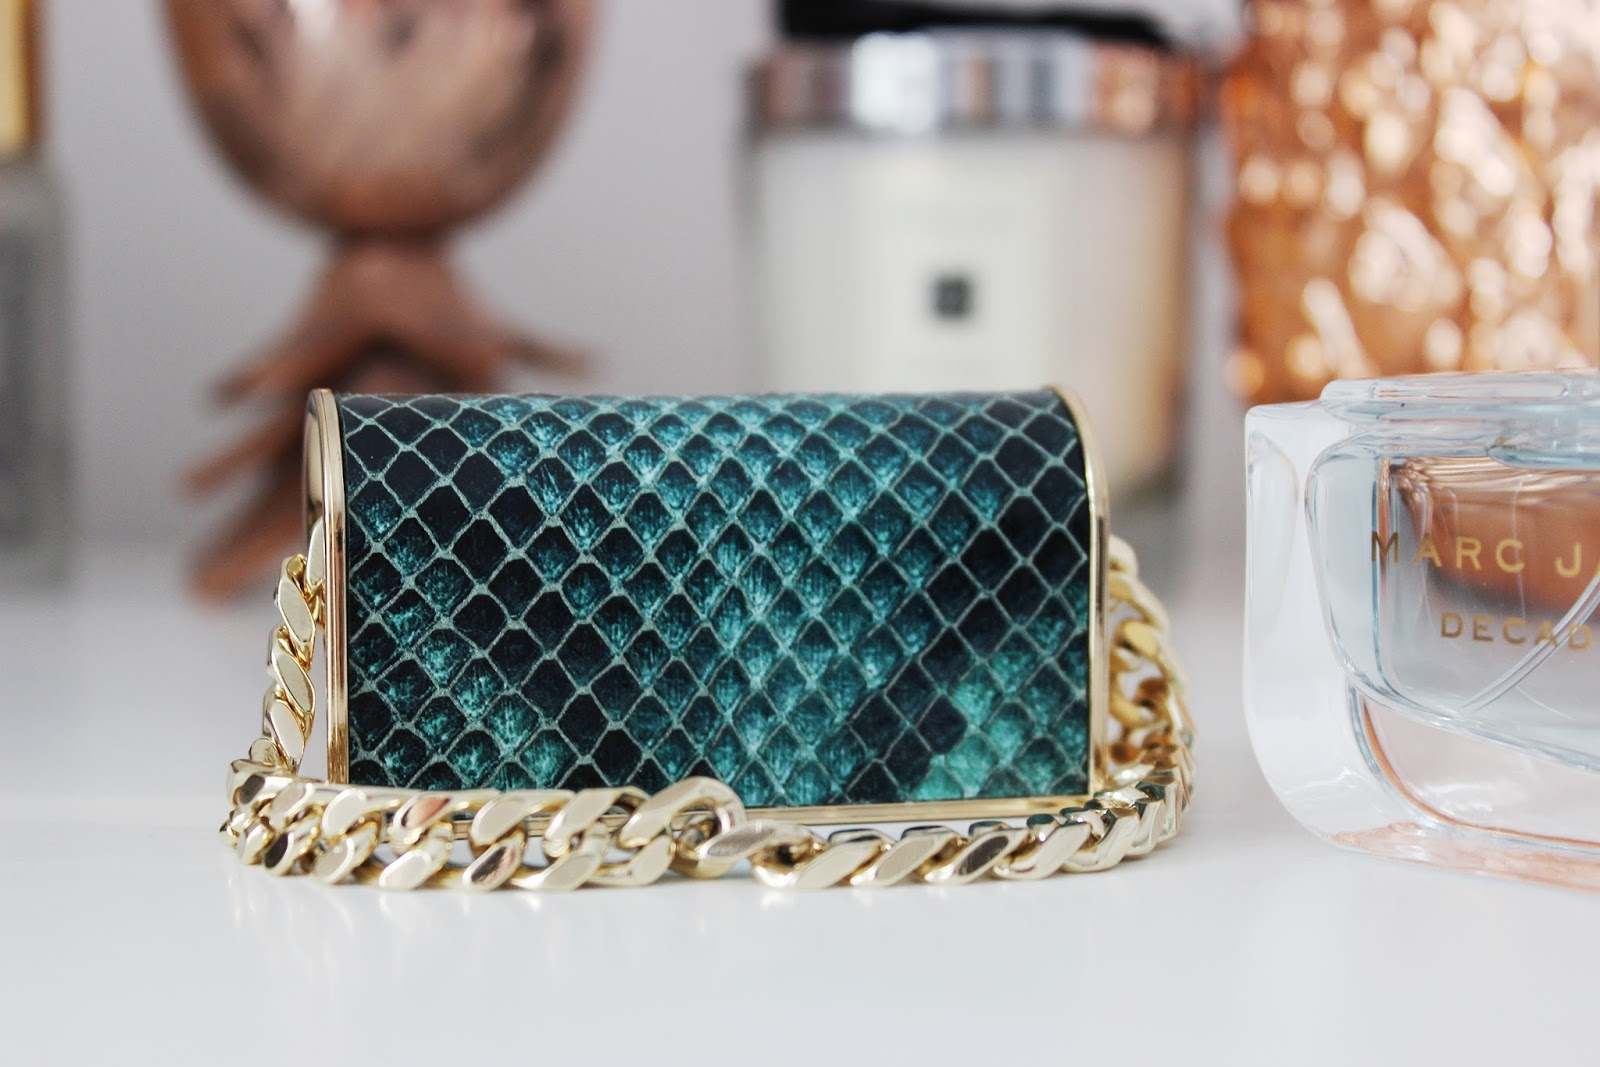 Обзор духов Marc Jacobs Decadence